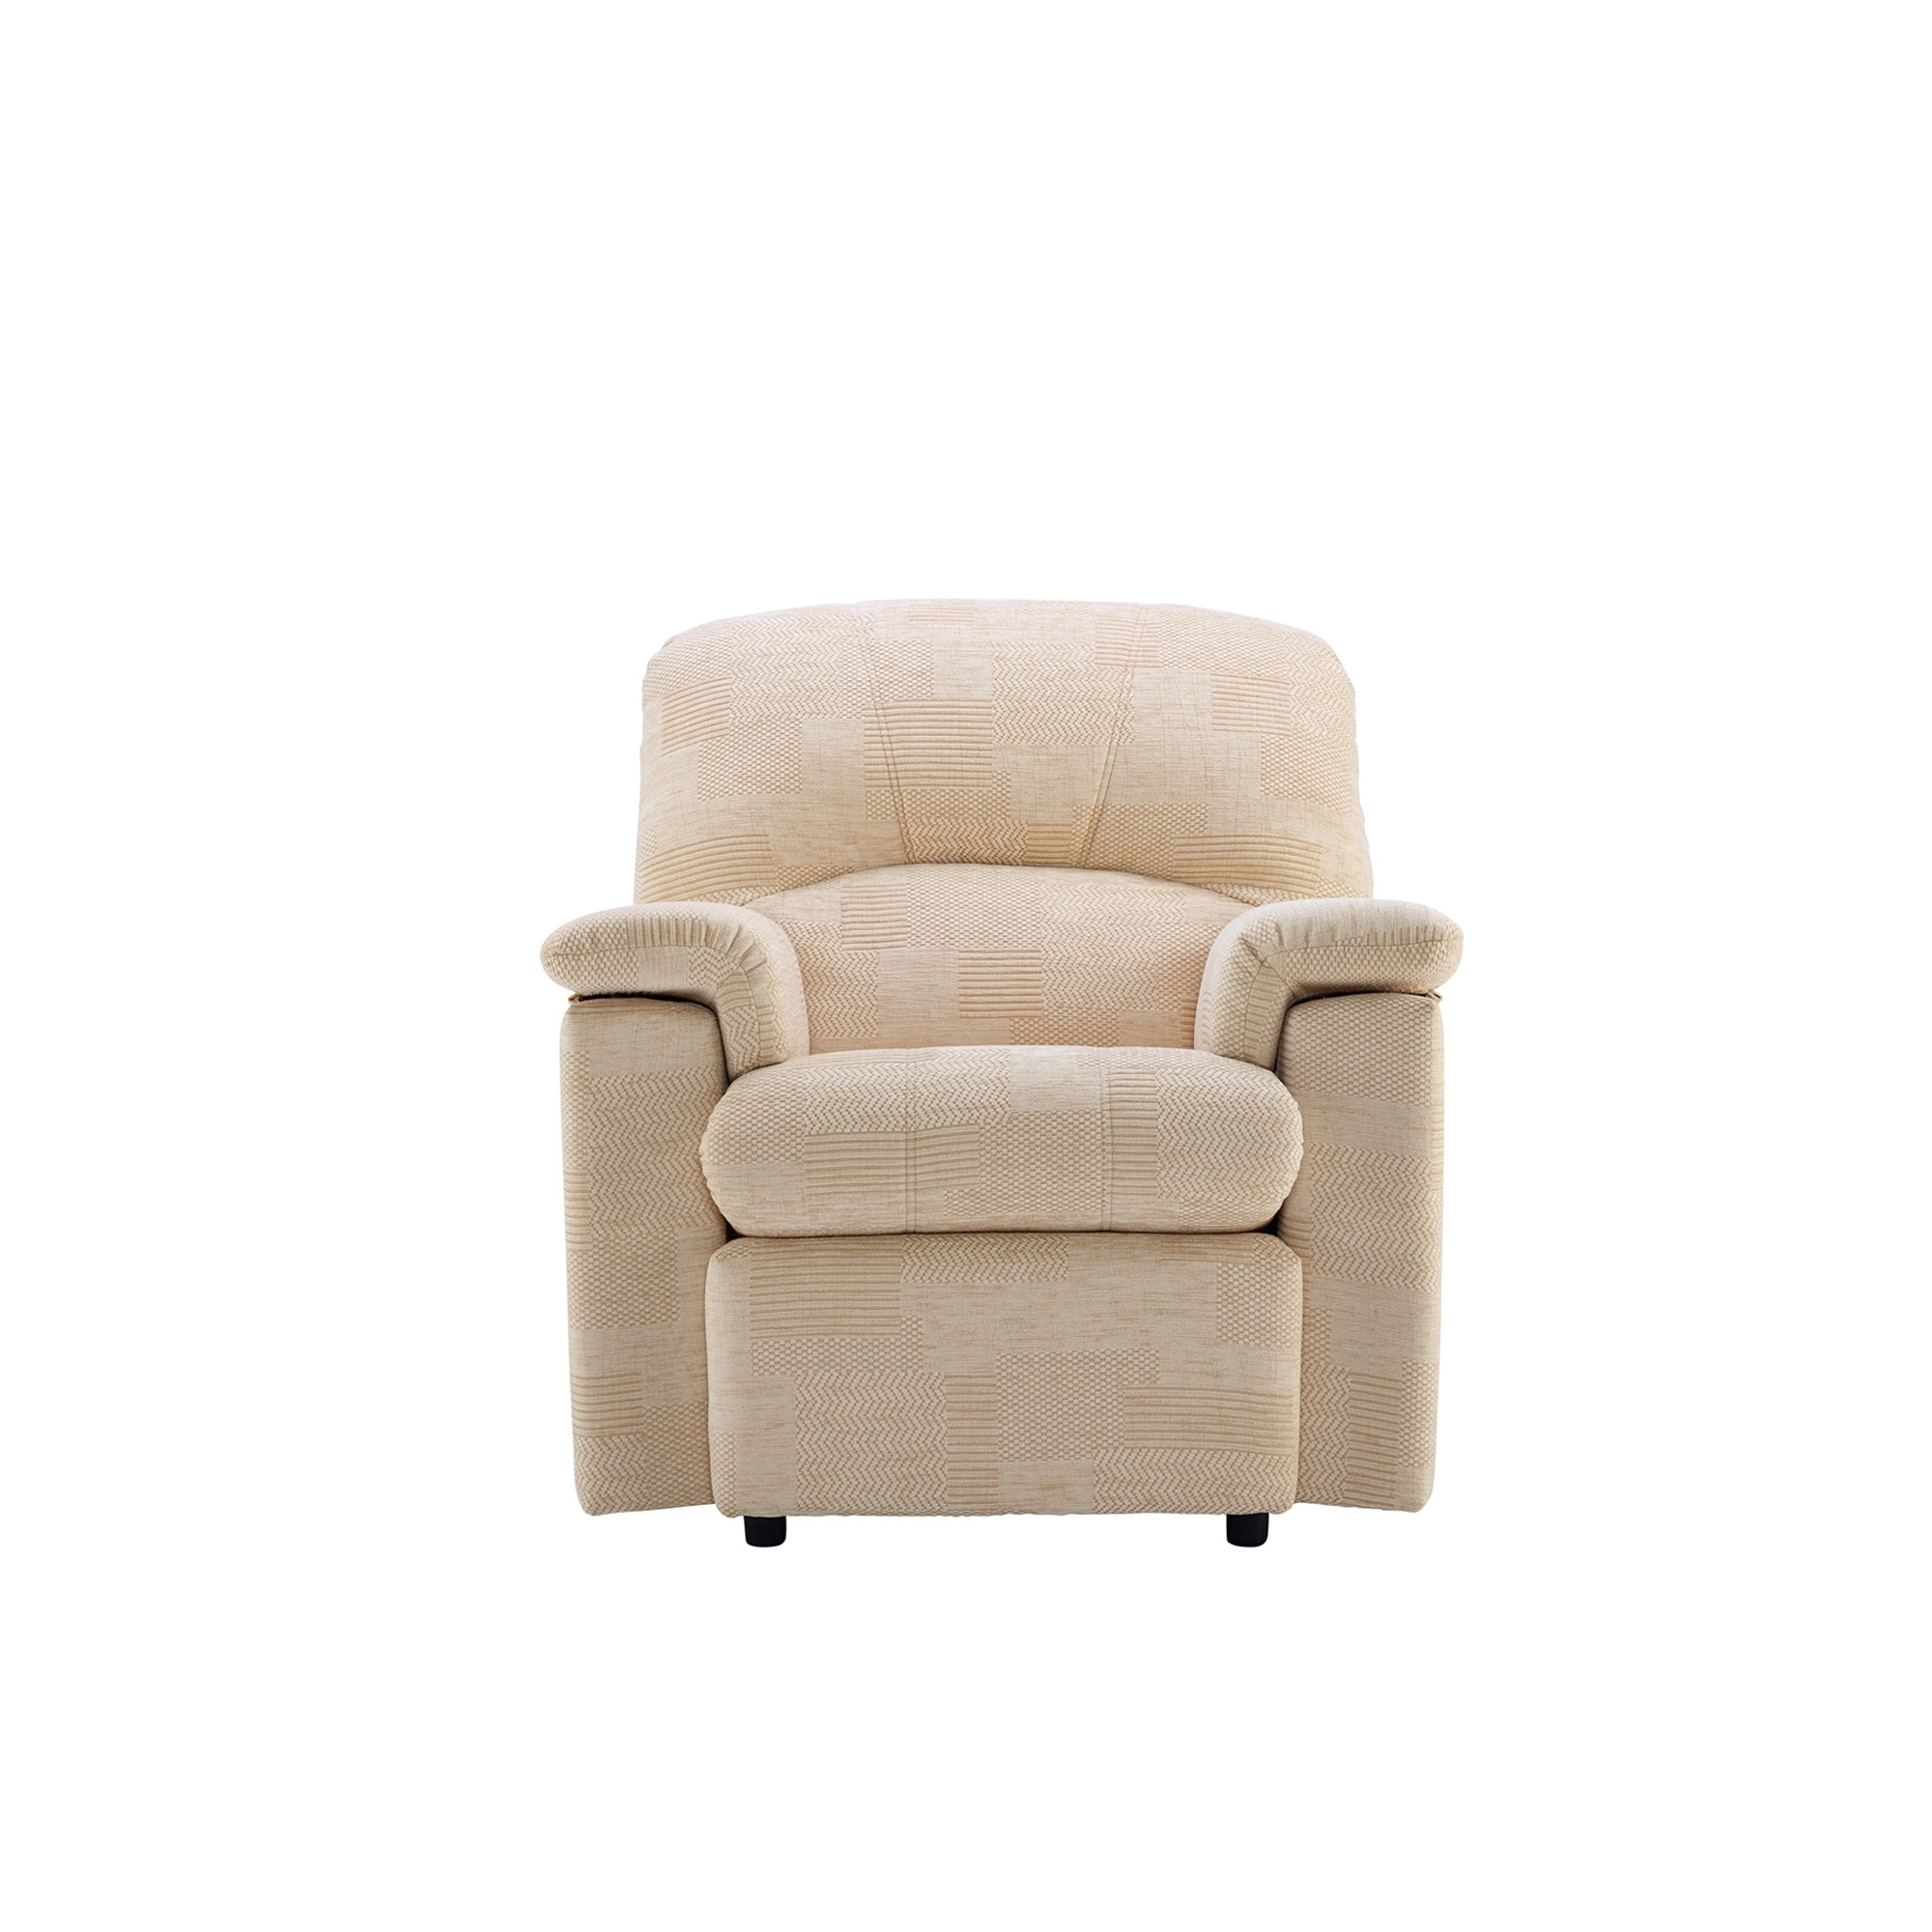 G Plan Chloe Power Recliner Armchair All Chairs Cookes